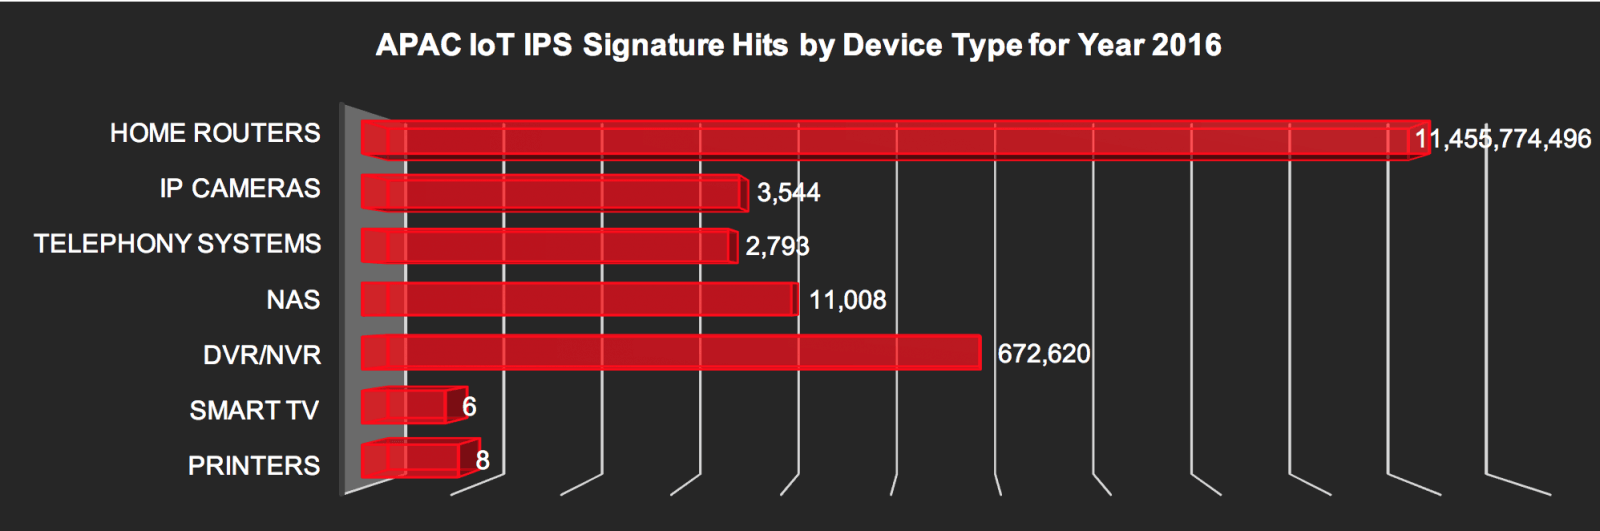 IoT IPS signature hits in APAC by device - 2016